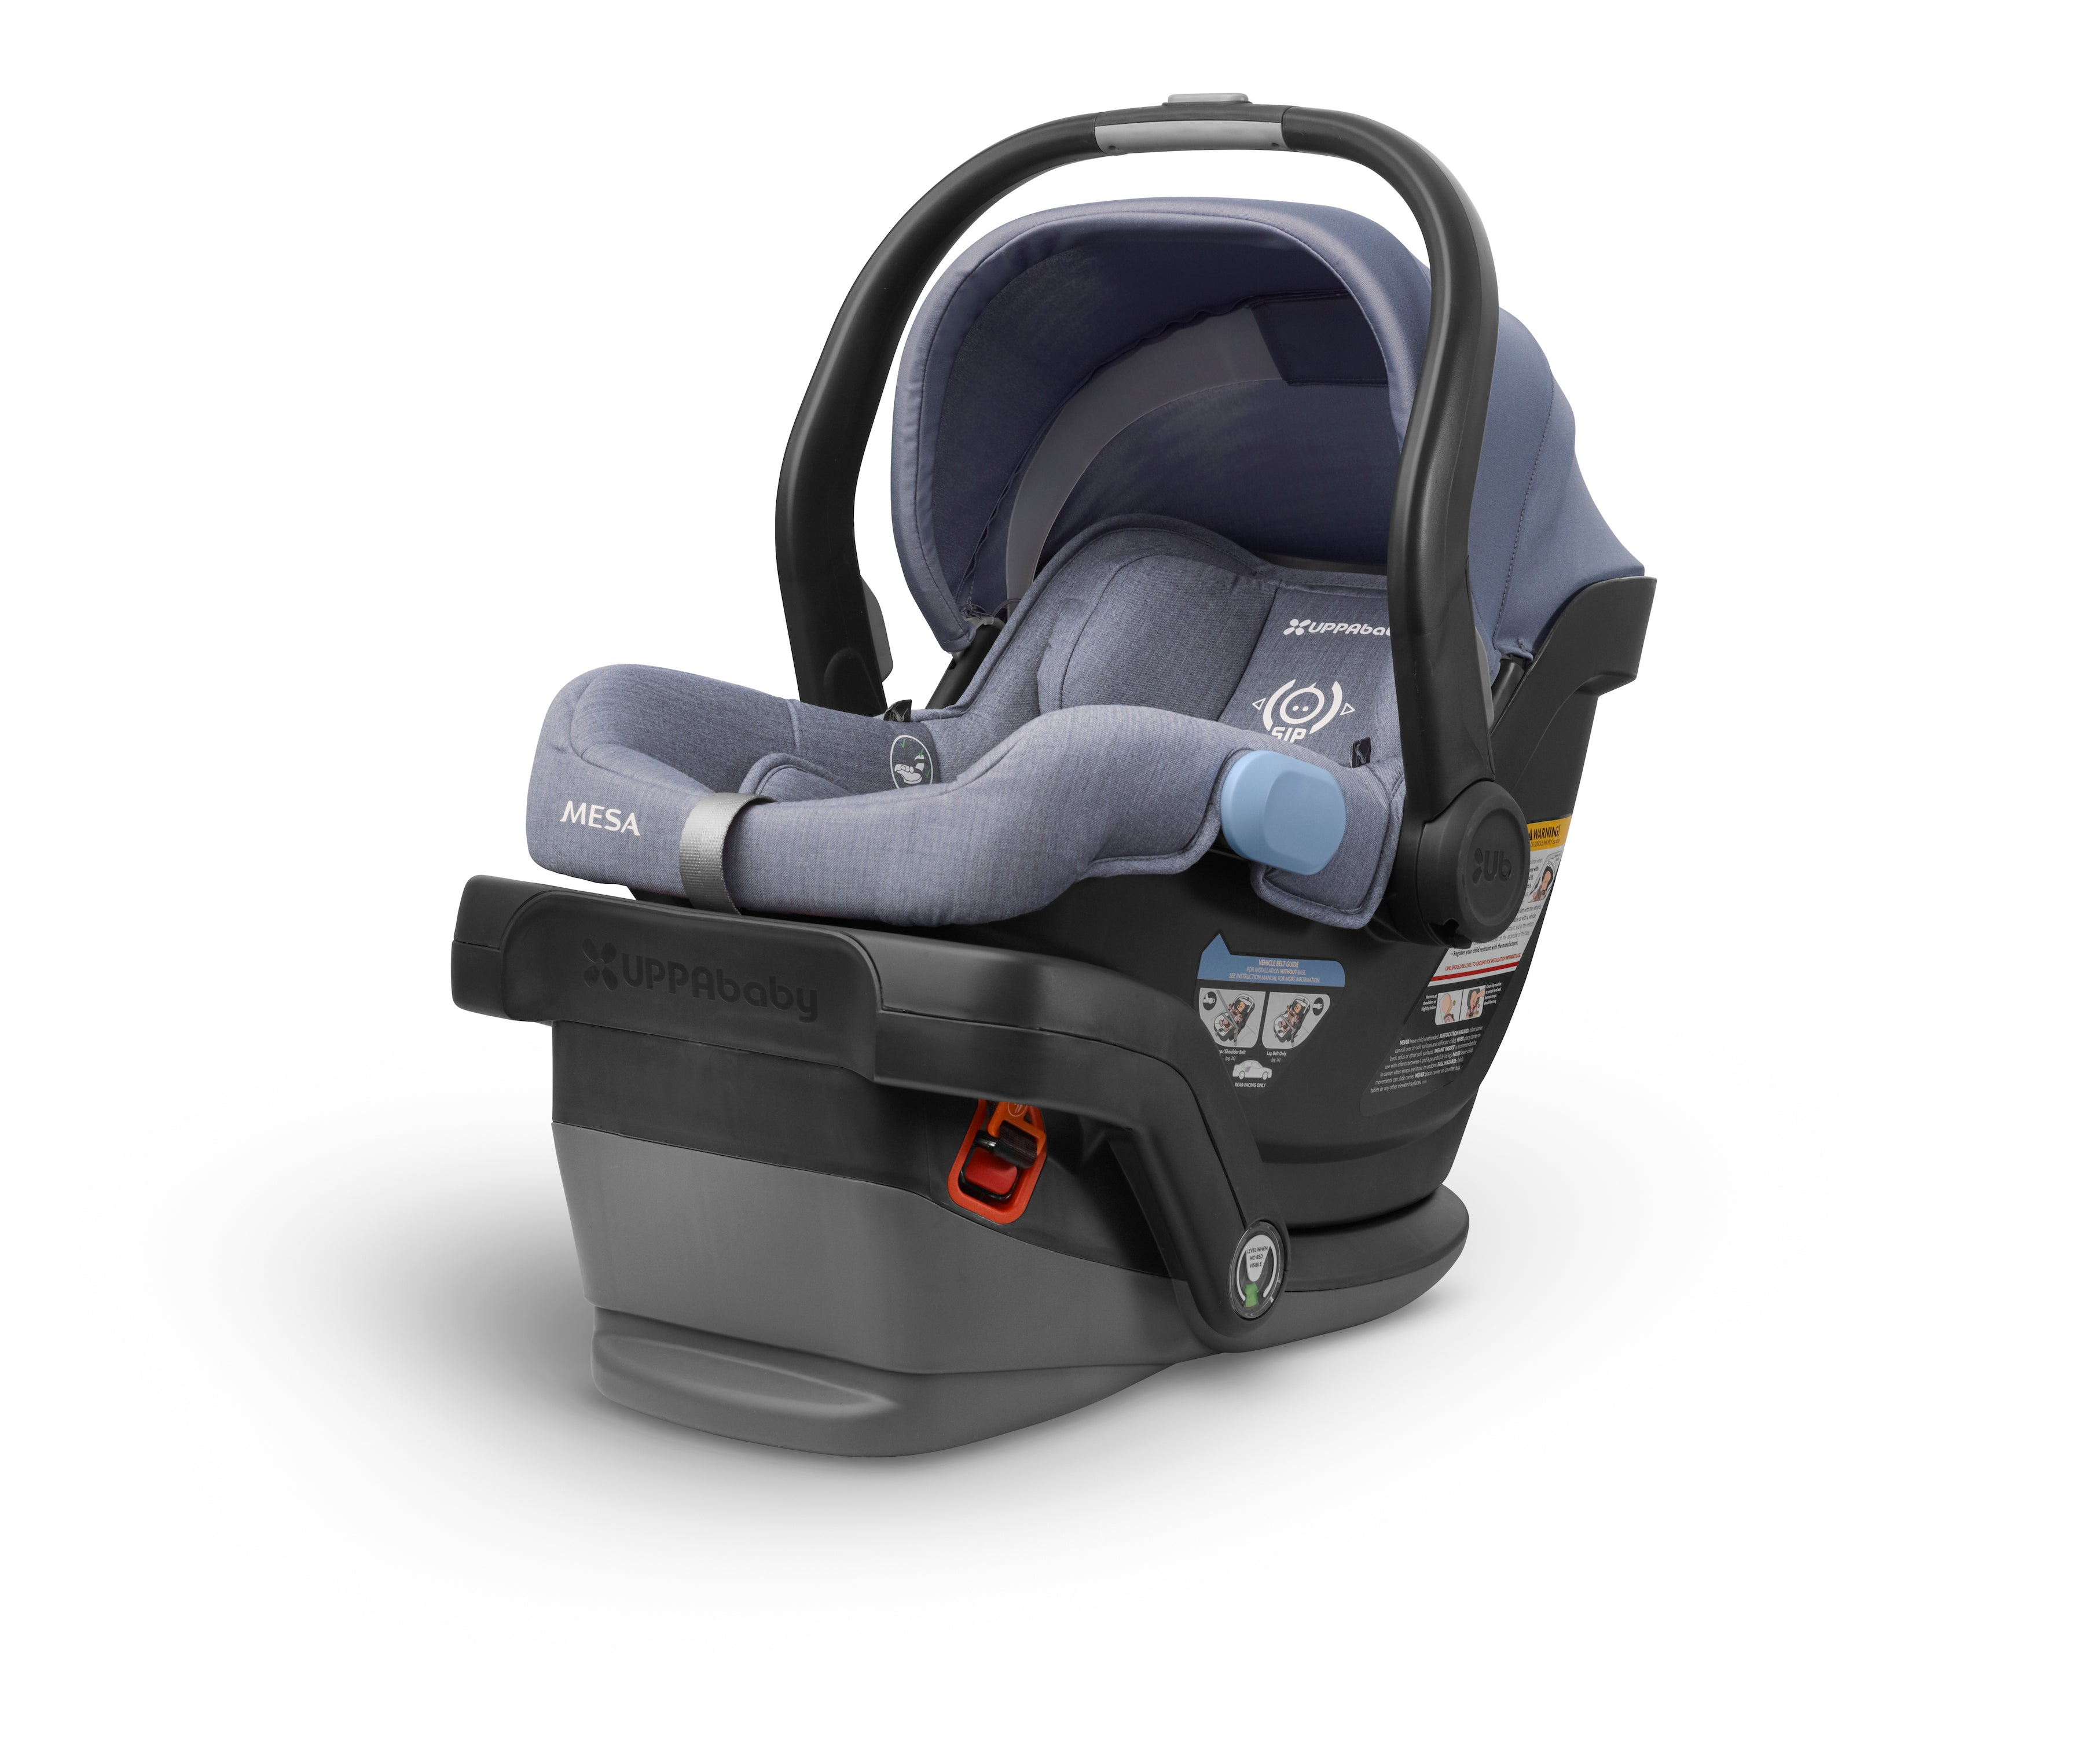 Fabulous Uppababy Mesa Infant Car Seat 2018 2019 Online Peppy Machost Co Dining Chair Design Ideas Machostcouk